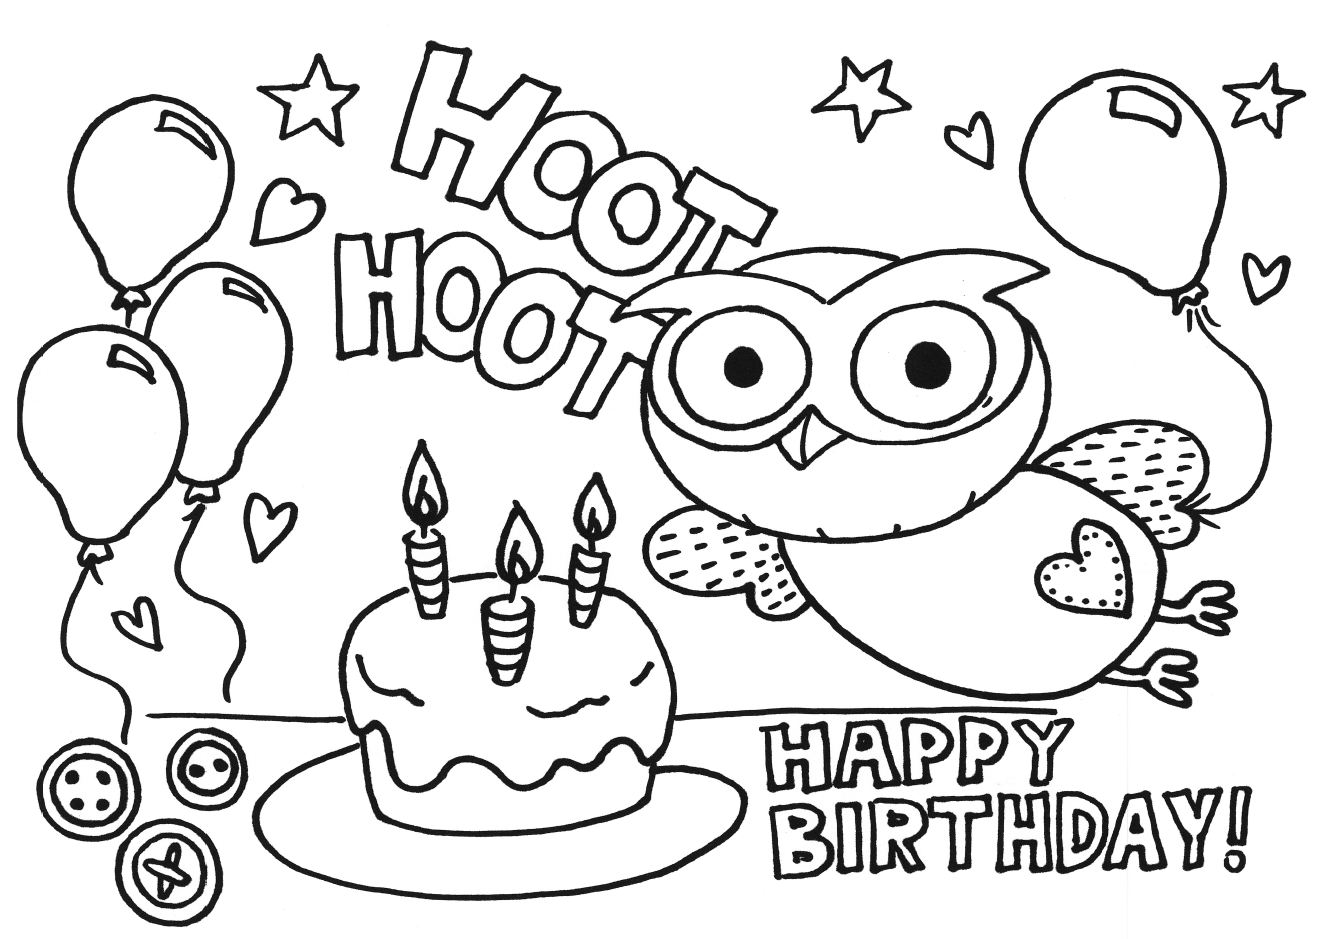 kid coloring pages for birthday - photo#7